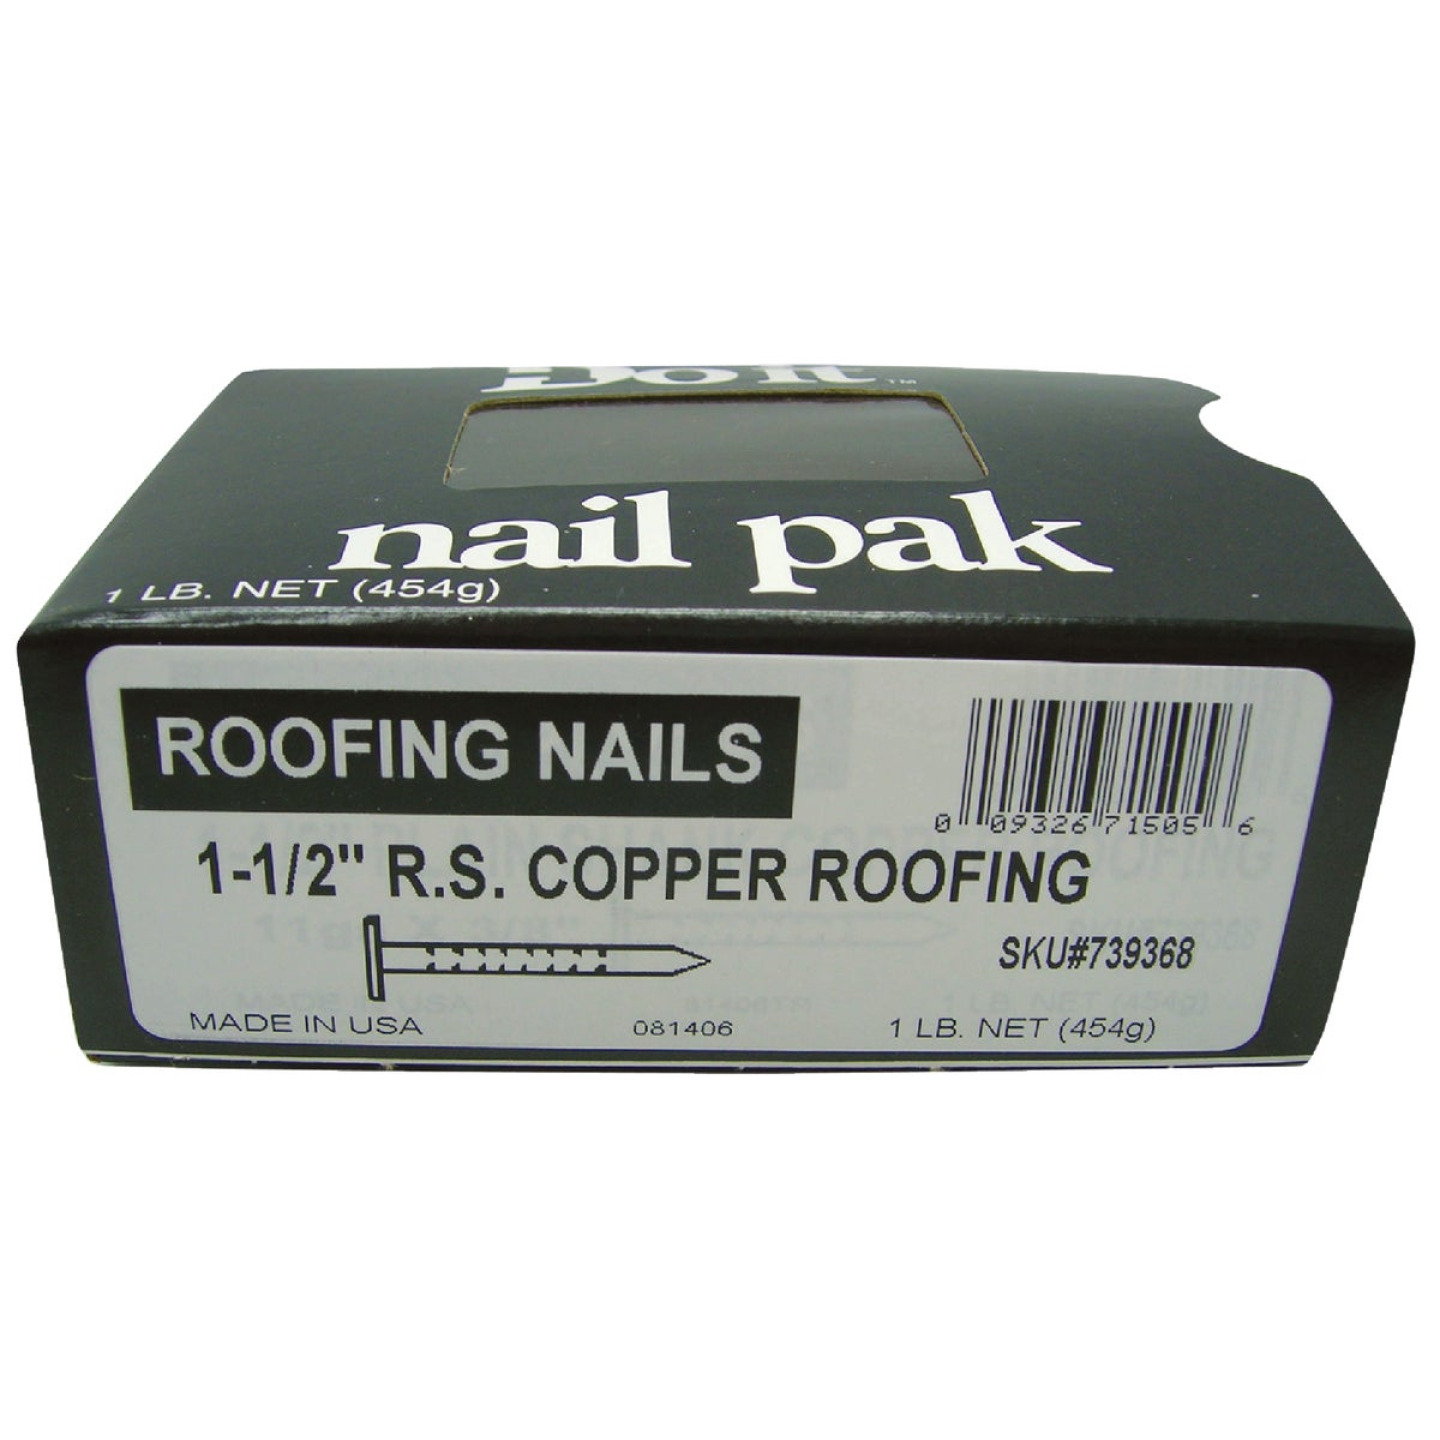 Do it 1-1/2 In. 11 ga Copper Roofing Nails (155 Ct., 1 Lb.) Image 2